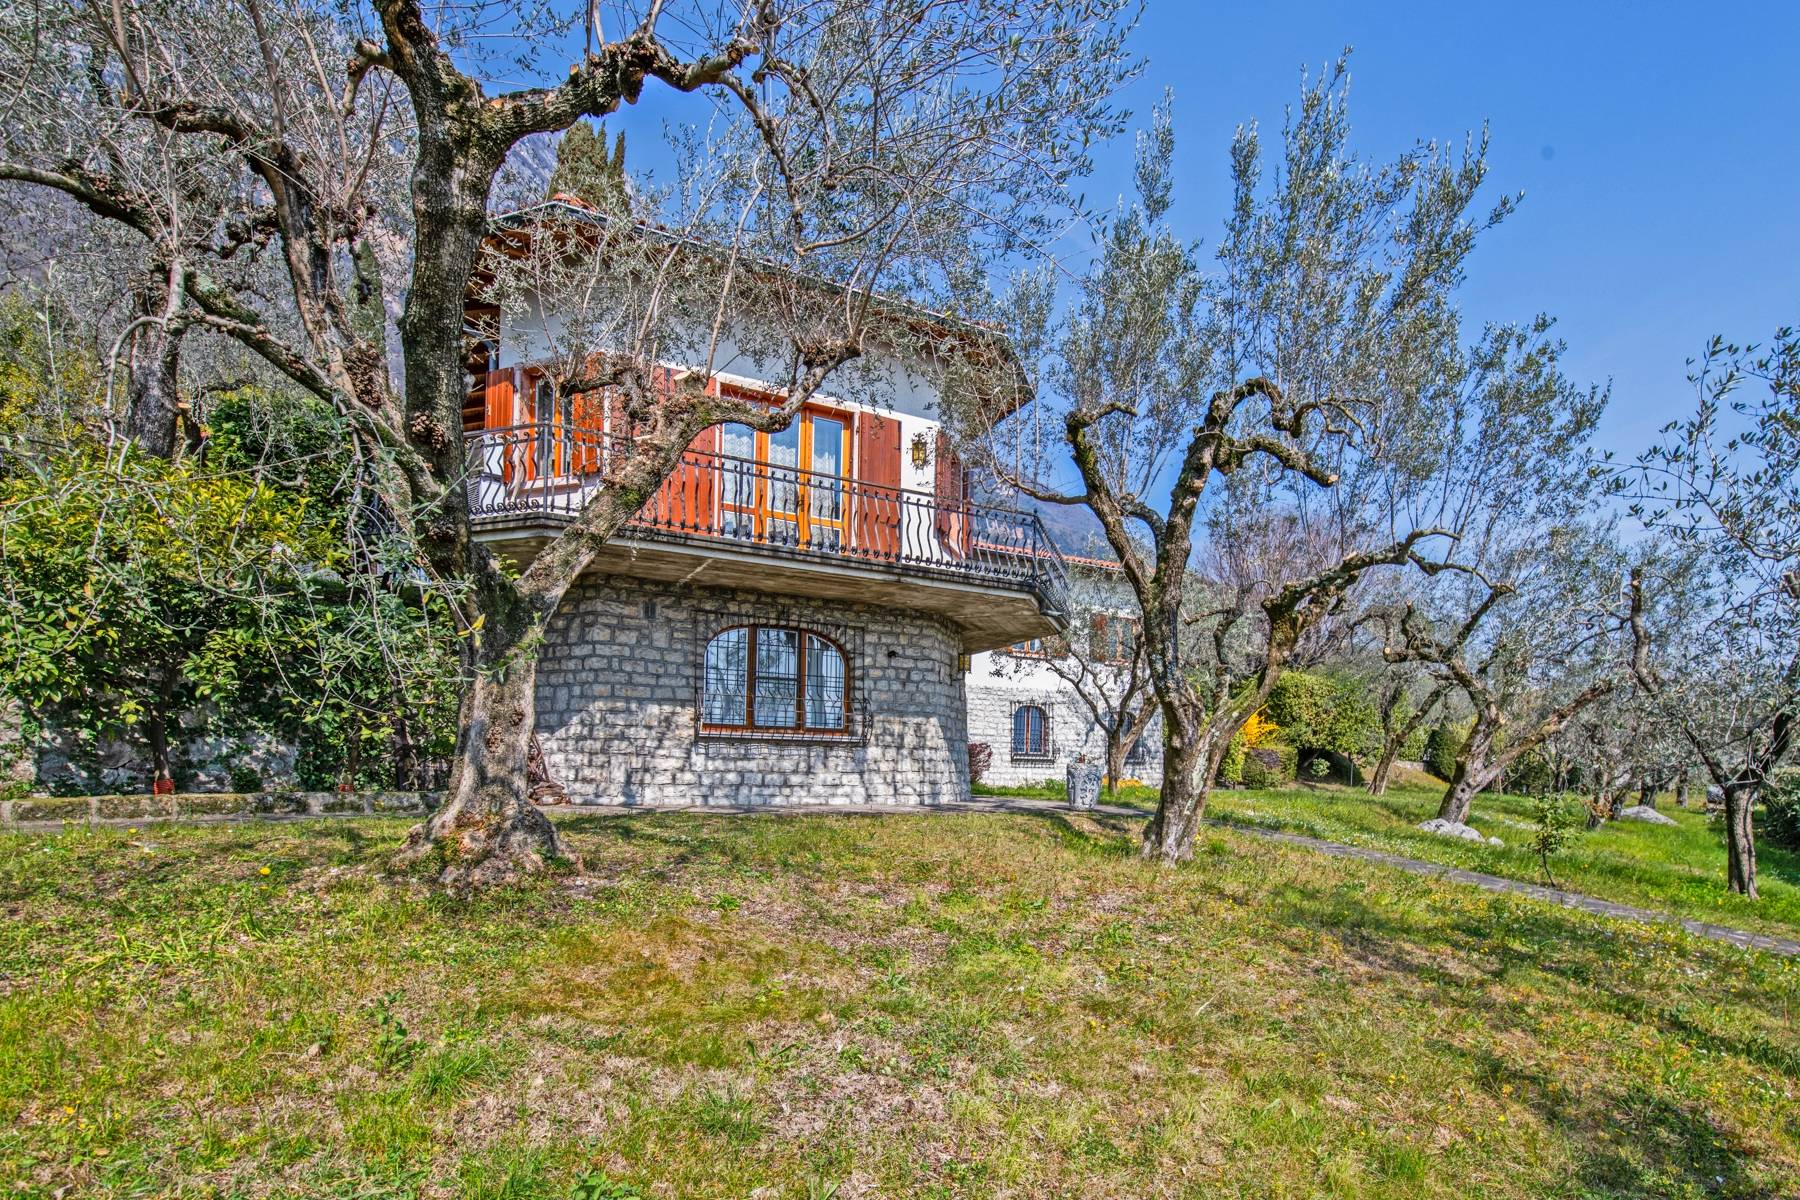 Villa with lake view in Gargnano surrounded by olive trees - 27